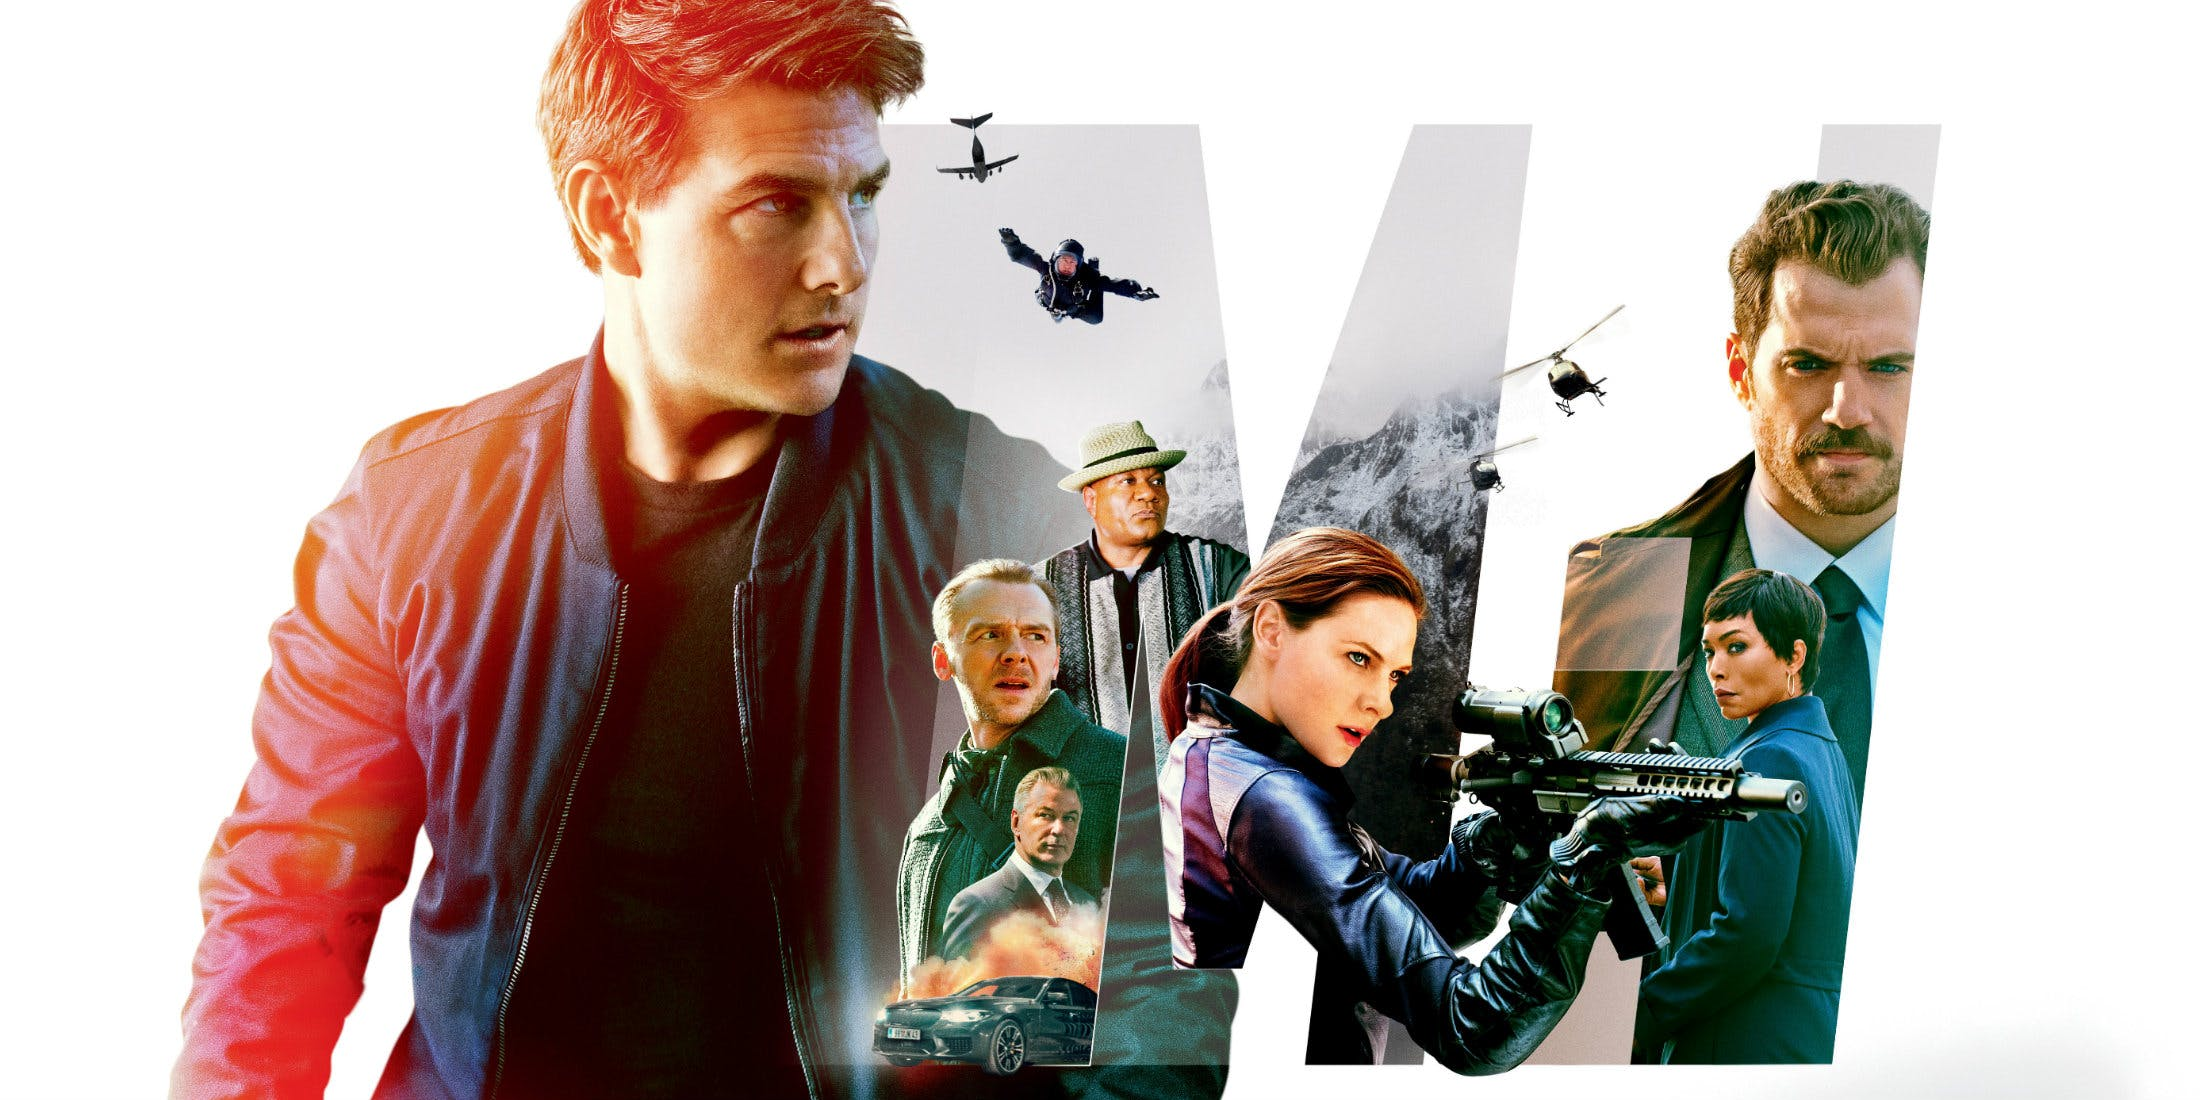 mission-impossible-fallout-banner_1.jpg